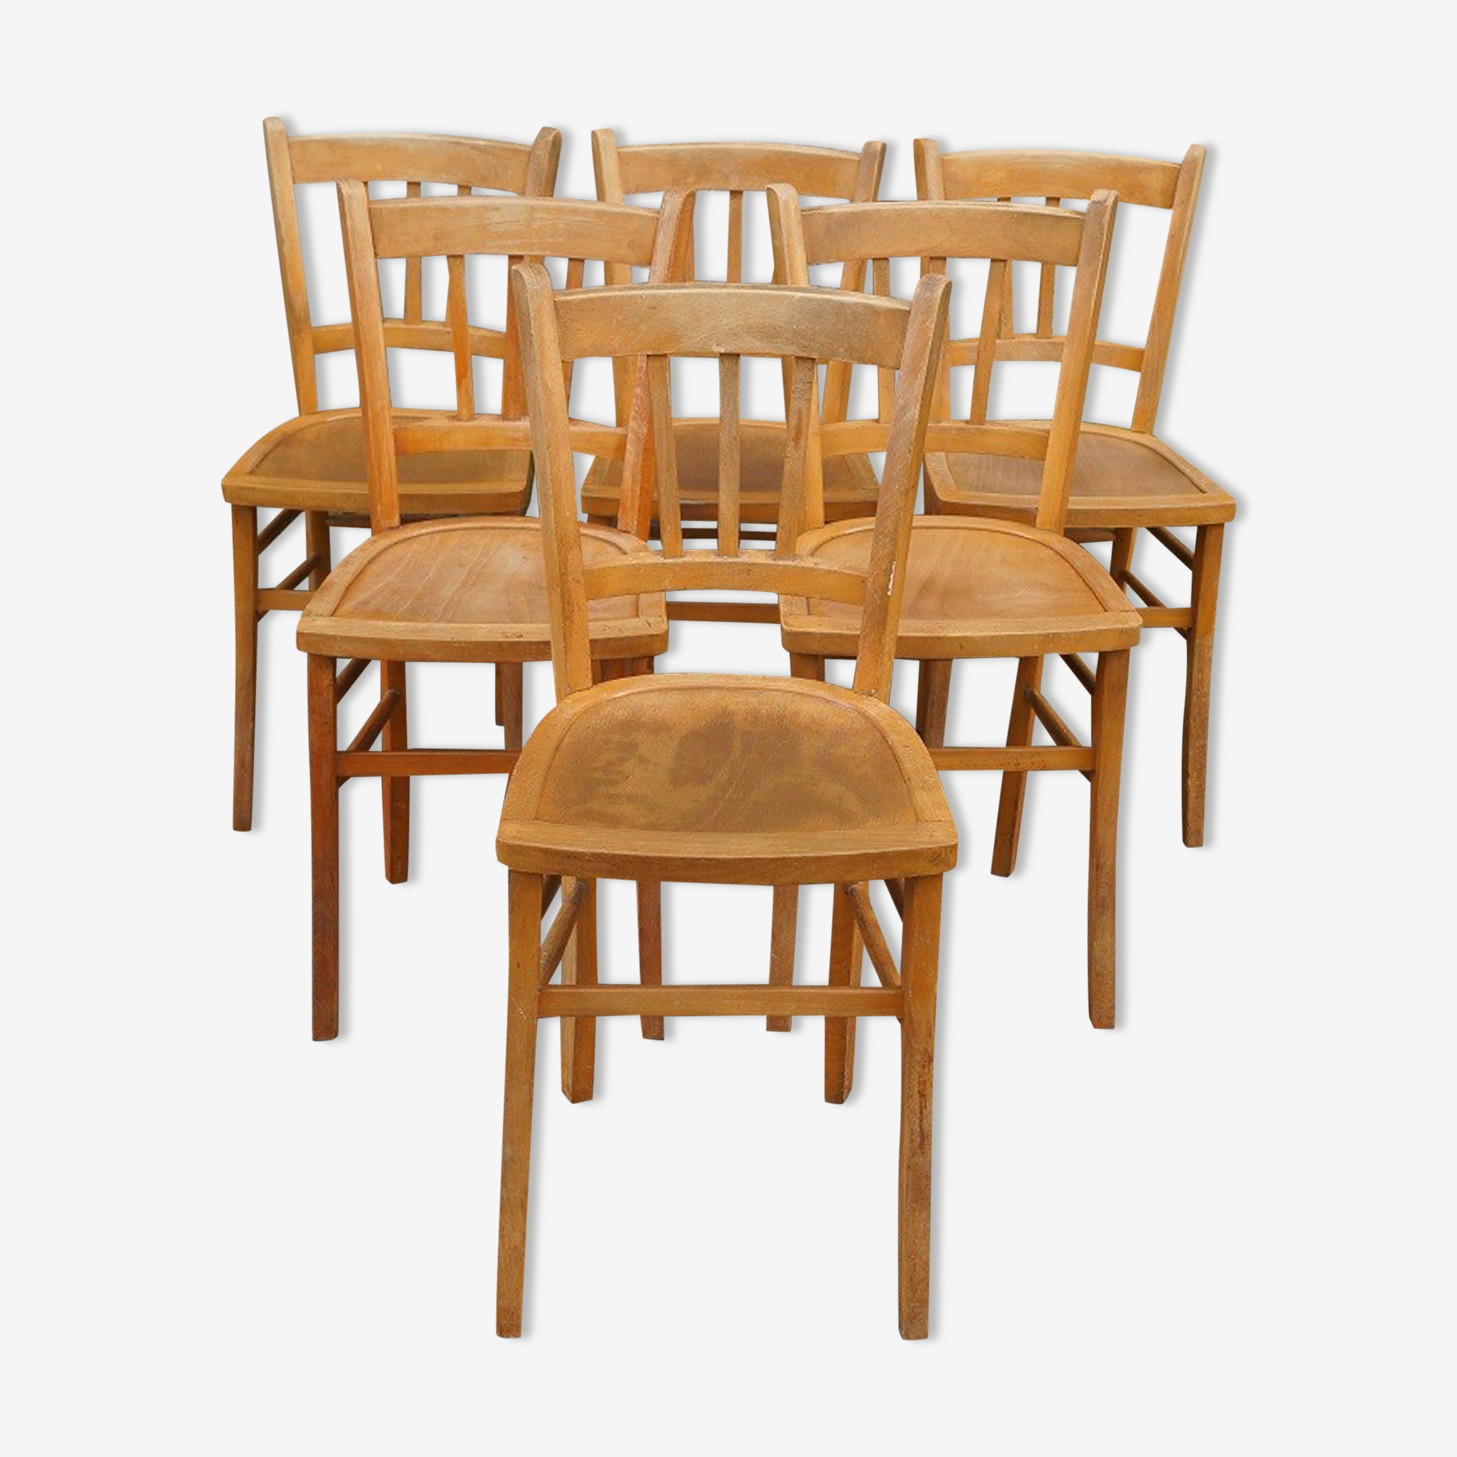 Set of 6 luterma chairs